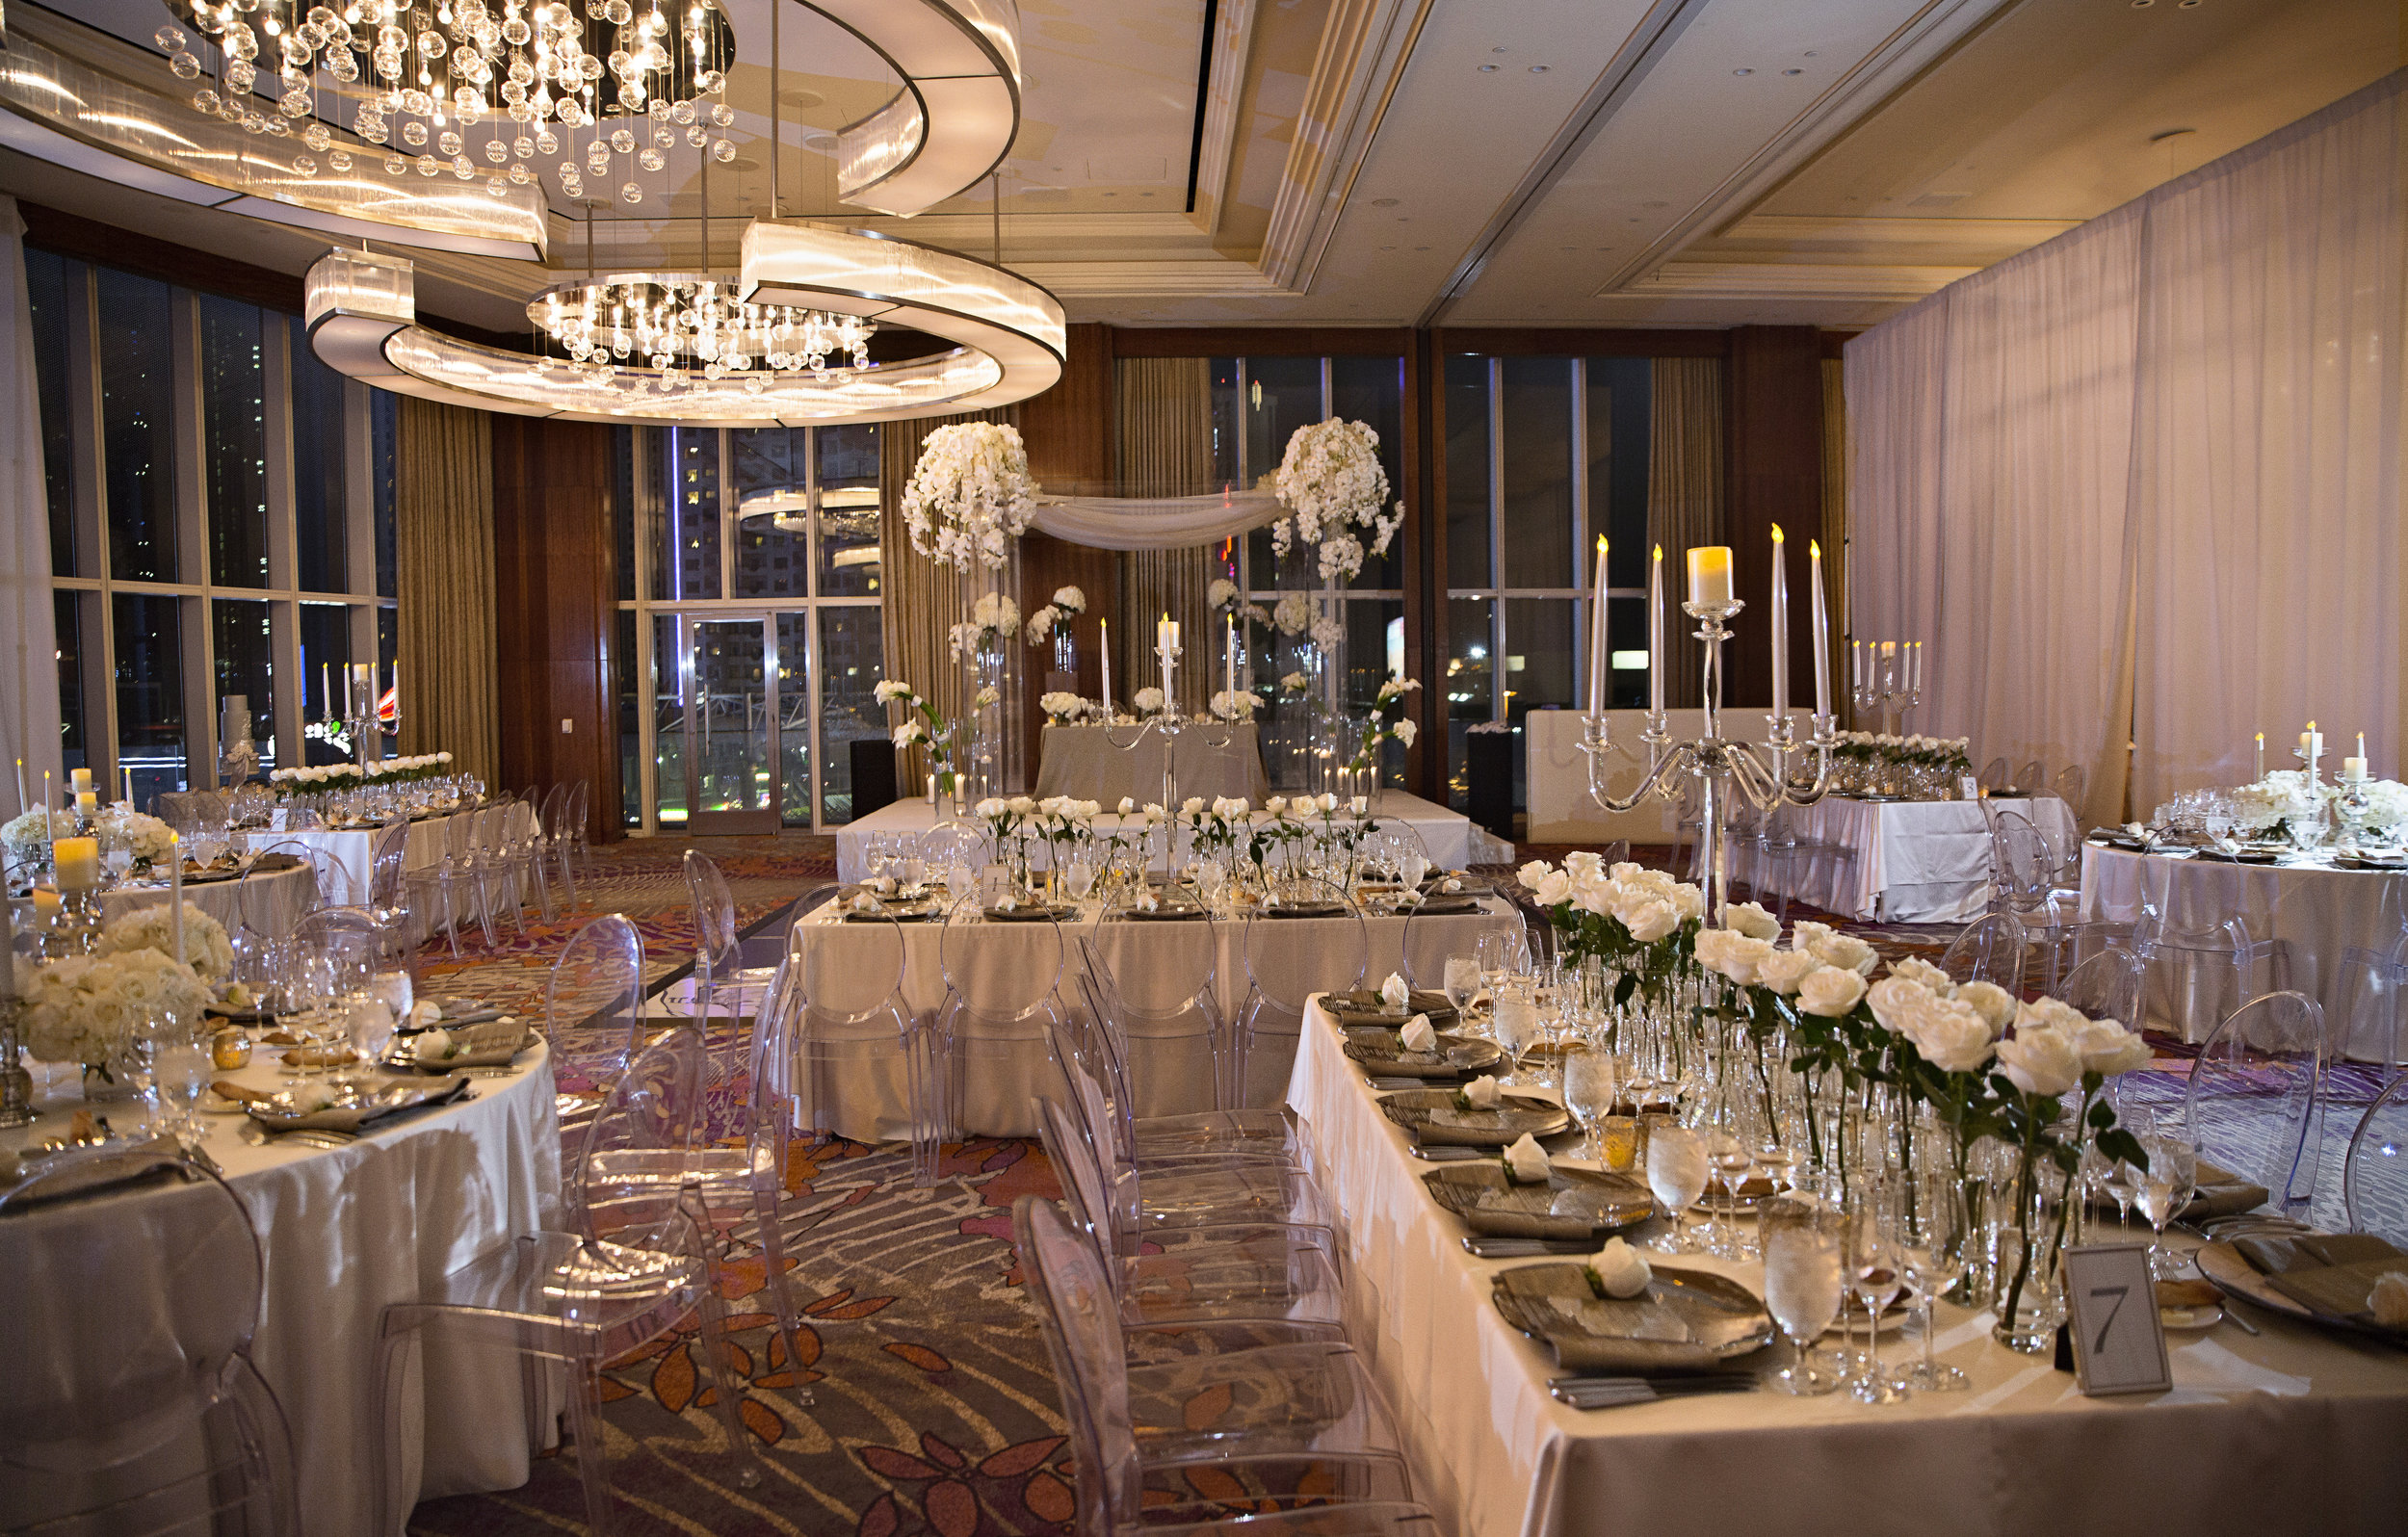 White on white jewish luxury wedding.WEDDING PLANNING & EVENT DESIGN • Andrea Eppolito Events ,PHOTOGRAPHY • AltF Photography ,FLORAL AND DECOR DESIGN & PRODUCTION • Destinations by Design , CATERING • Mandarin Oriental Las Vegas , COCKTAILS •  The Grand Bevy , WEDDING GOWN •  Galia Lahav ,SHOES •  Jimmy Choo , ACRYLIC MENUS & SEATING CHART•  She Paperie